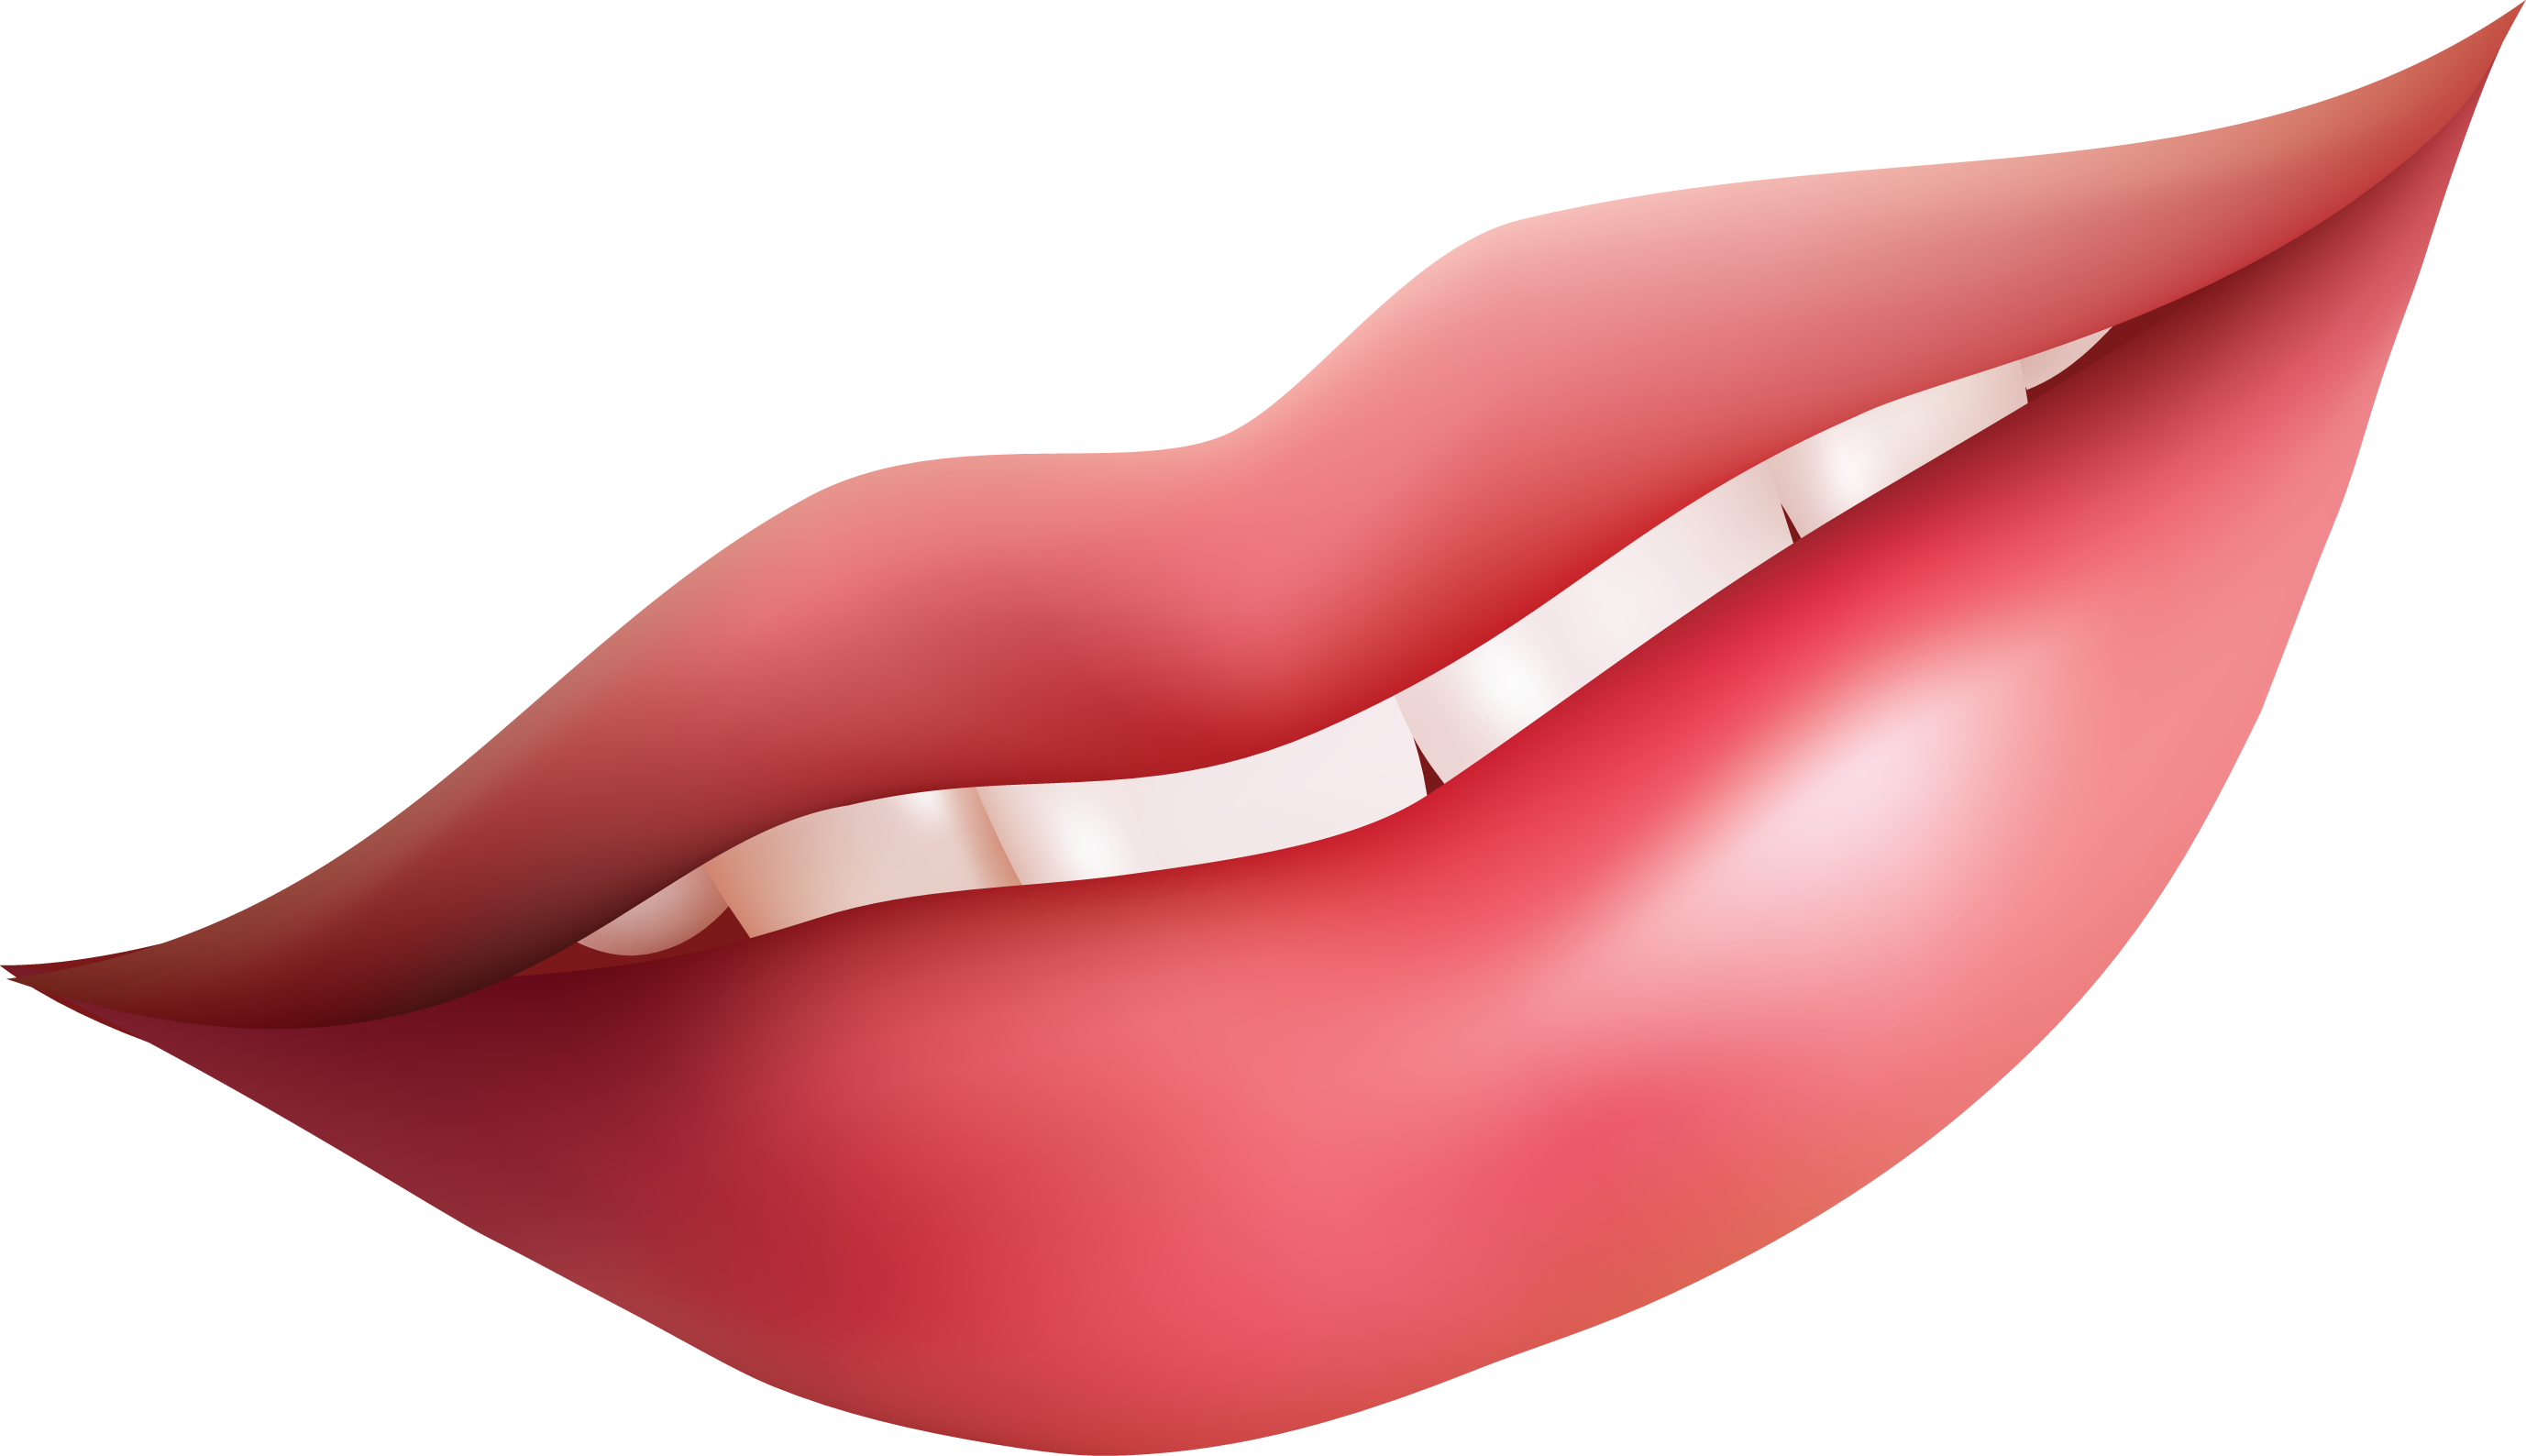 2755x1588 Free Lips Clip Art Clipart Image 3